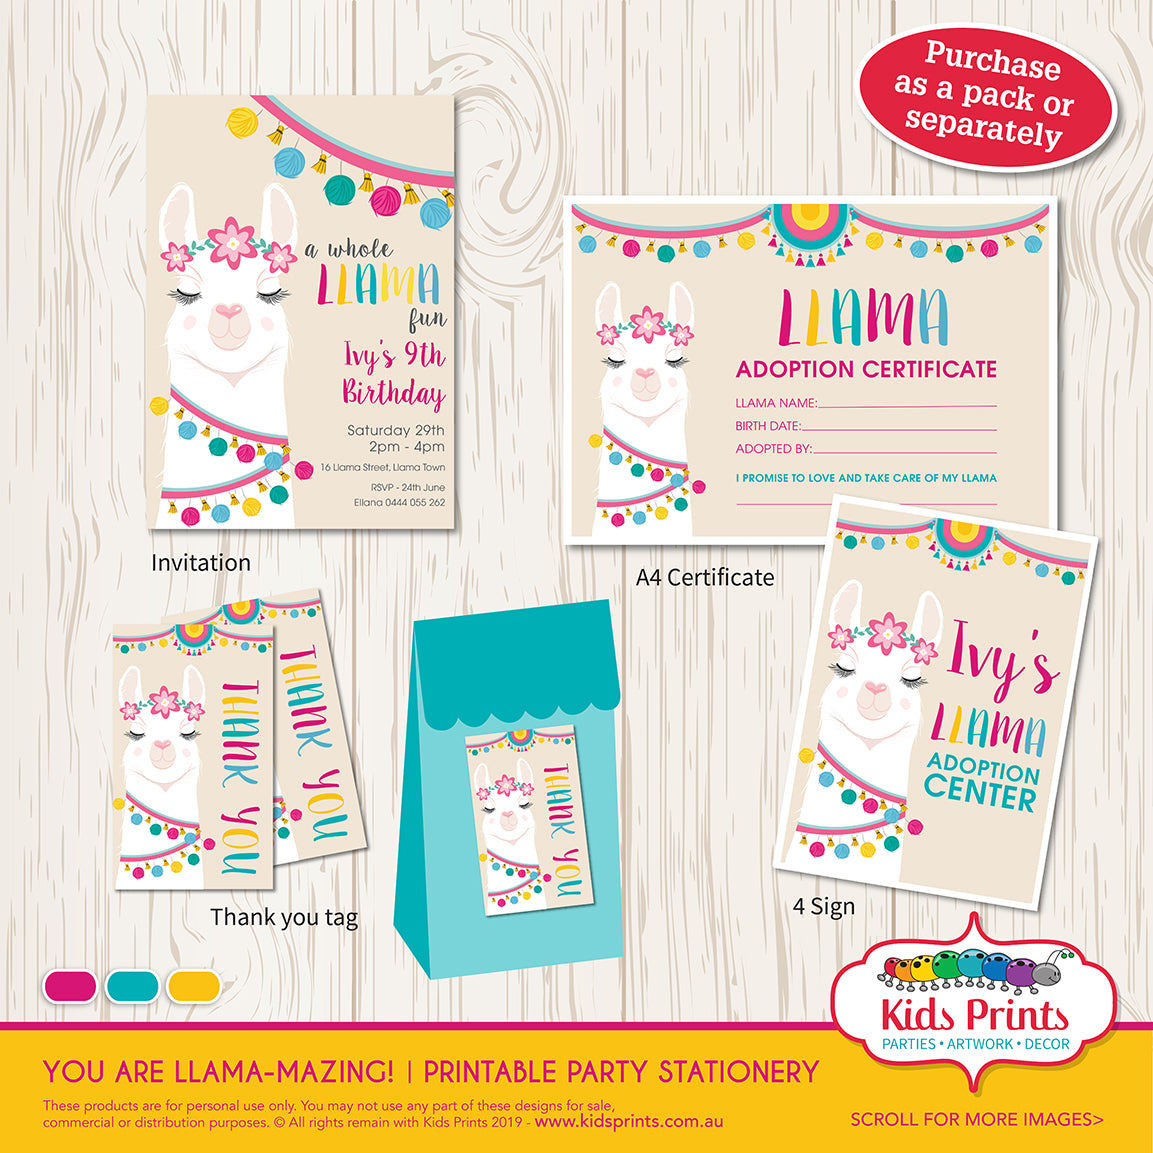 Llama Party | Printable Stationery - Kids Prints Online